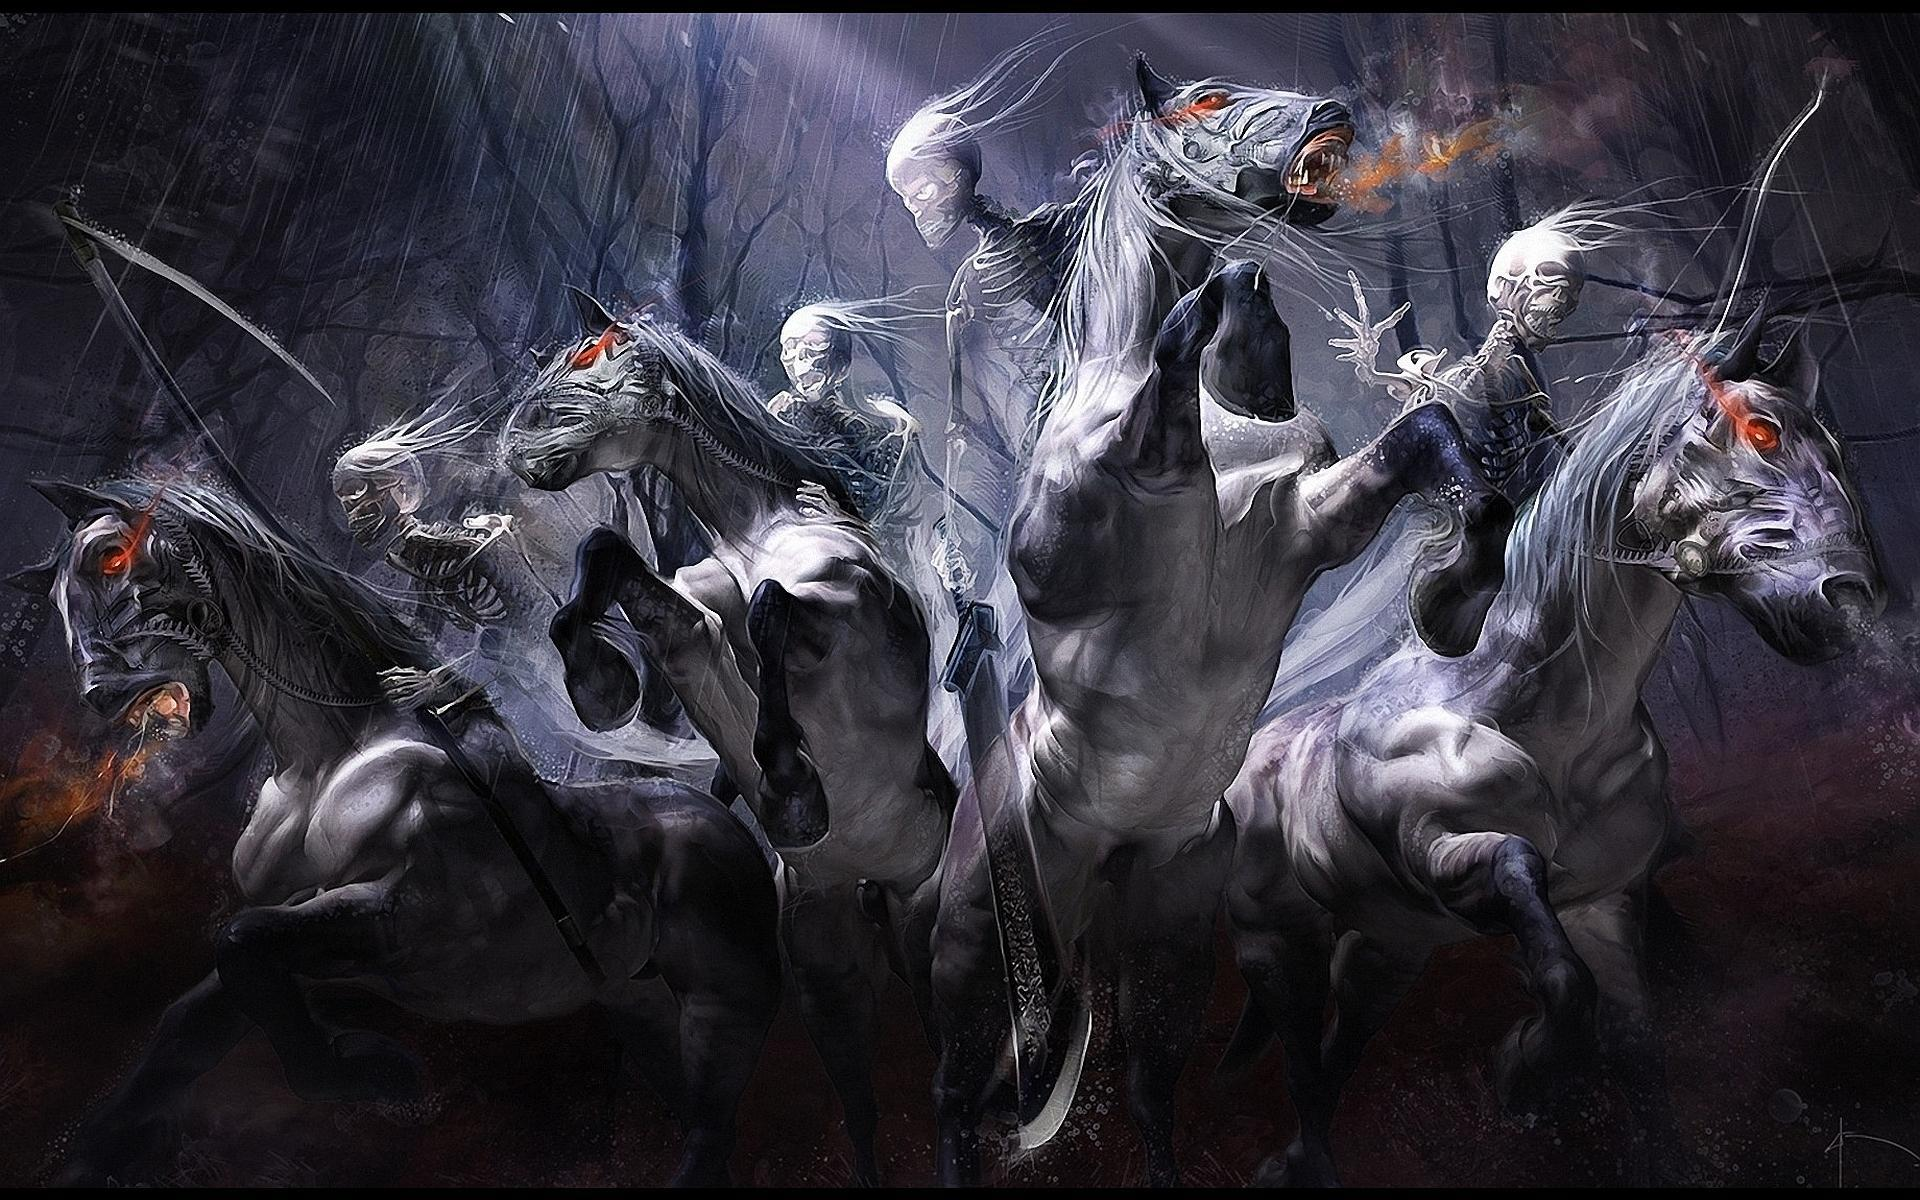 Four Horsemen Of The Apocalypse Wallpaper Darksiders   wallpaper 1920x1200